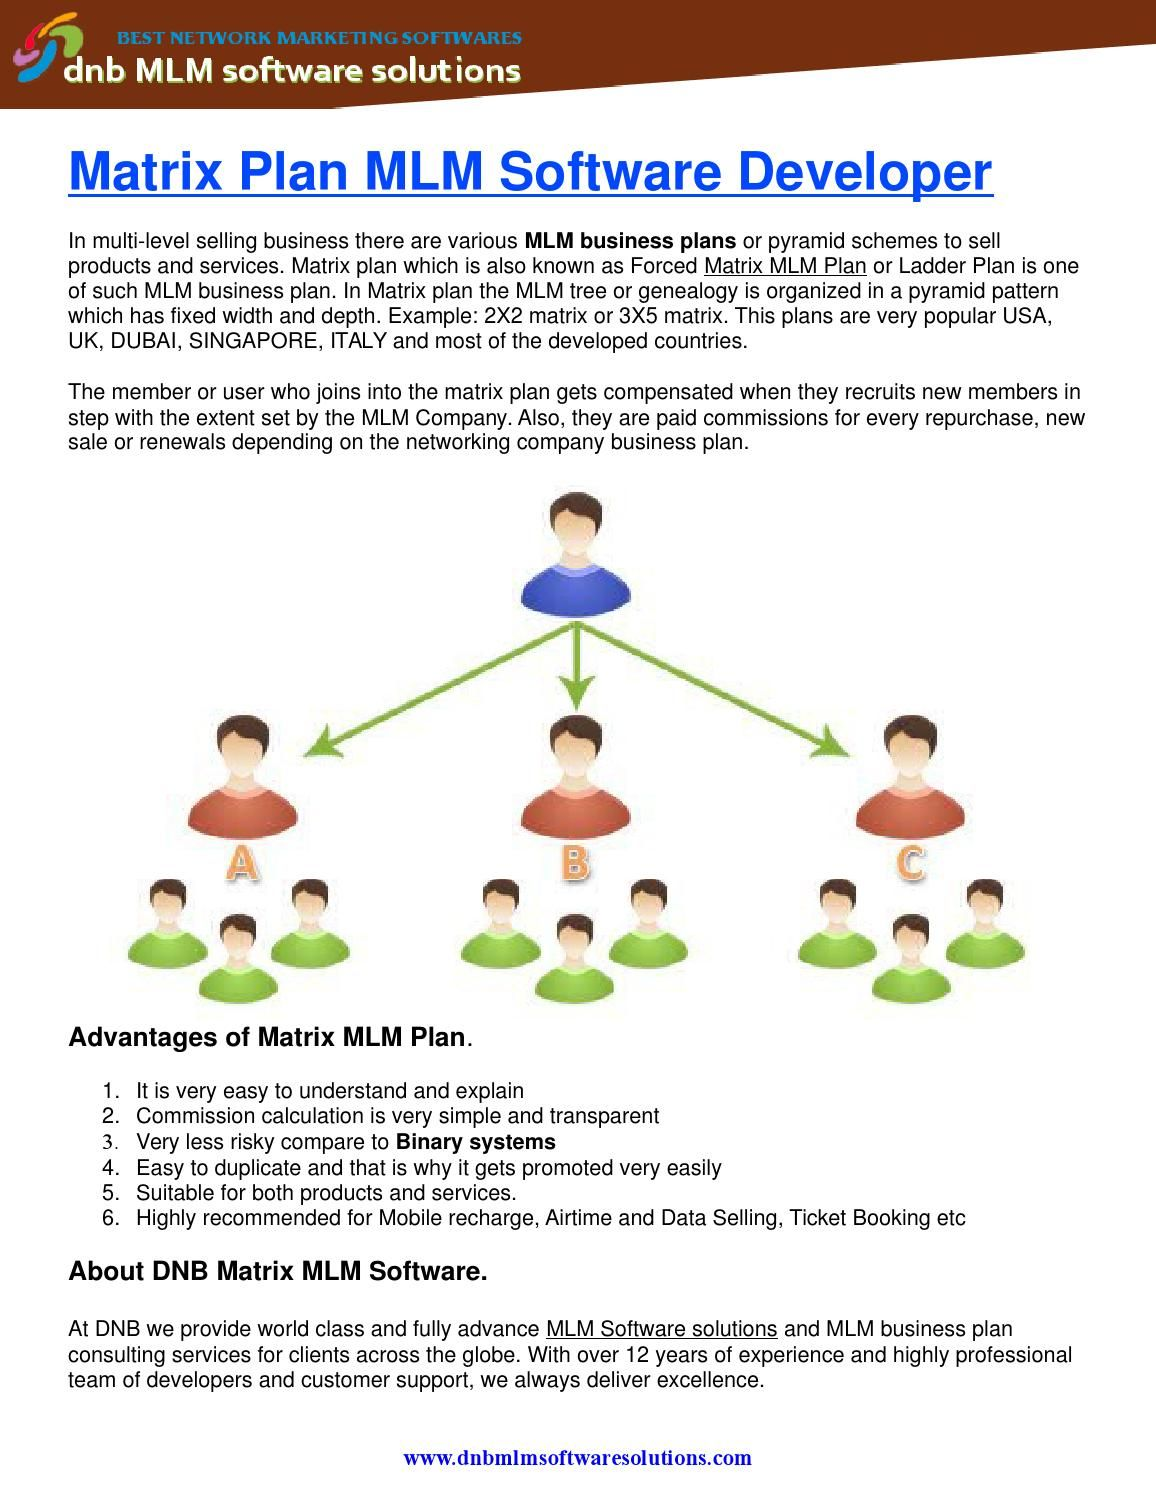 Dmlm Matrix Plan Mlm Software Developer Software - Mlm business plan template